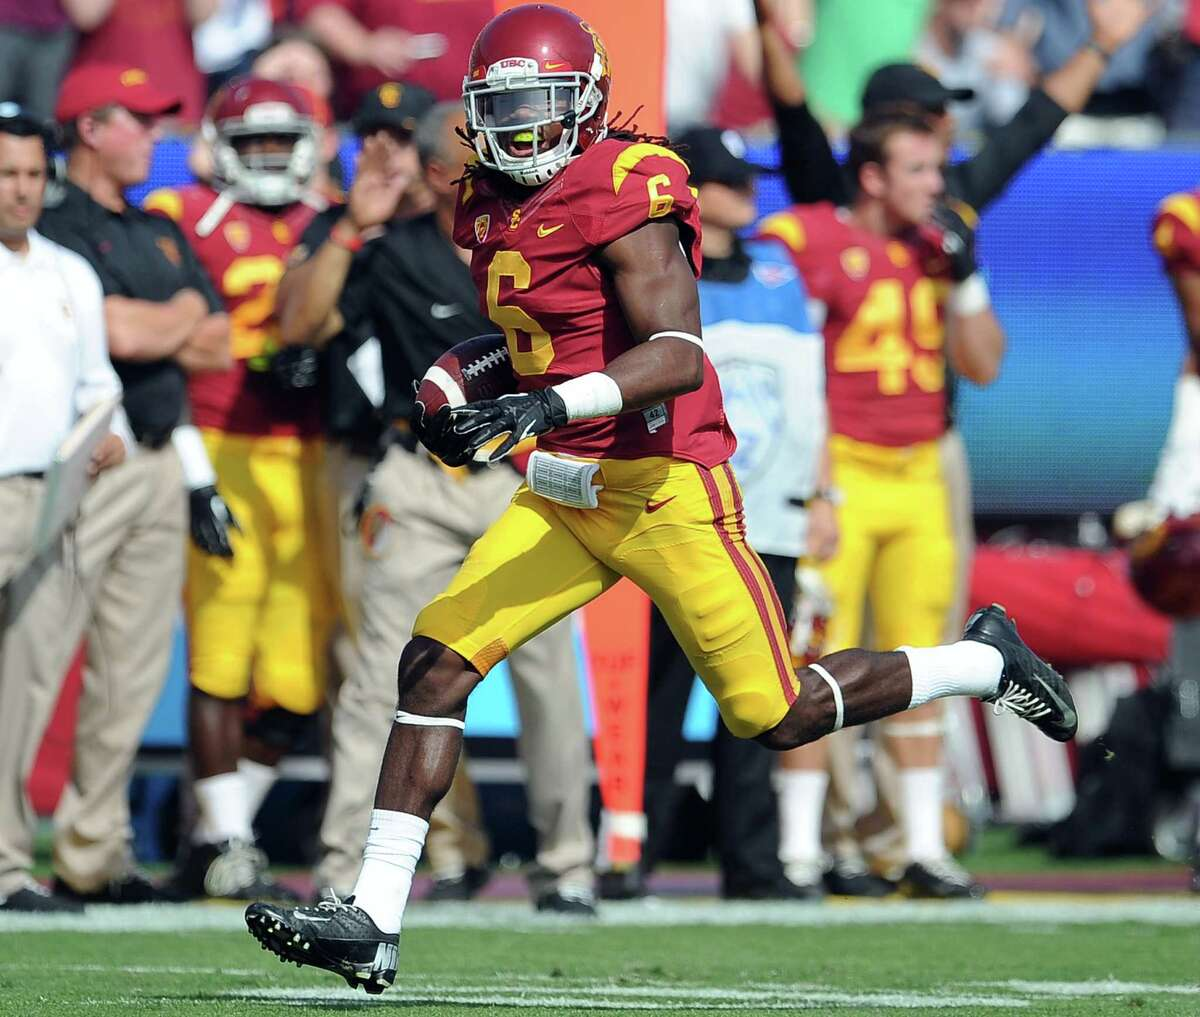 In this Oct. 26, 2013 file photo, Southern California safety Josh Shaw recovers a Utah fumble in a game in Los Angeles.